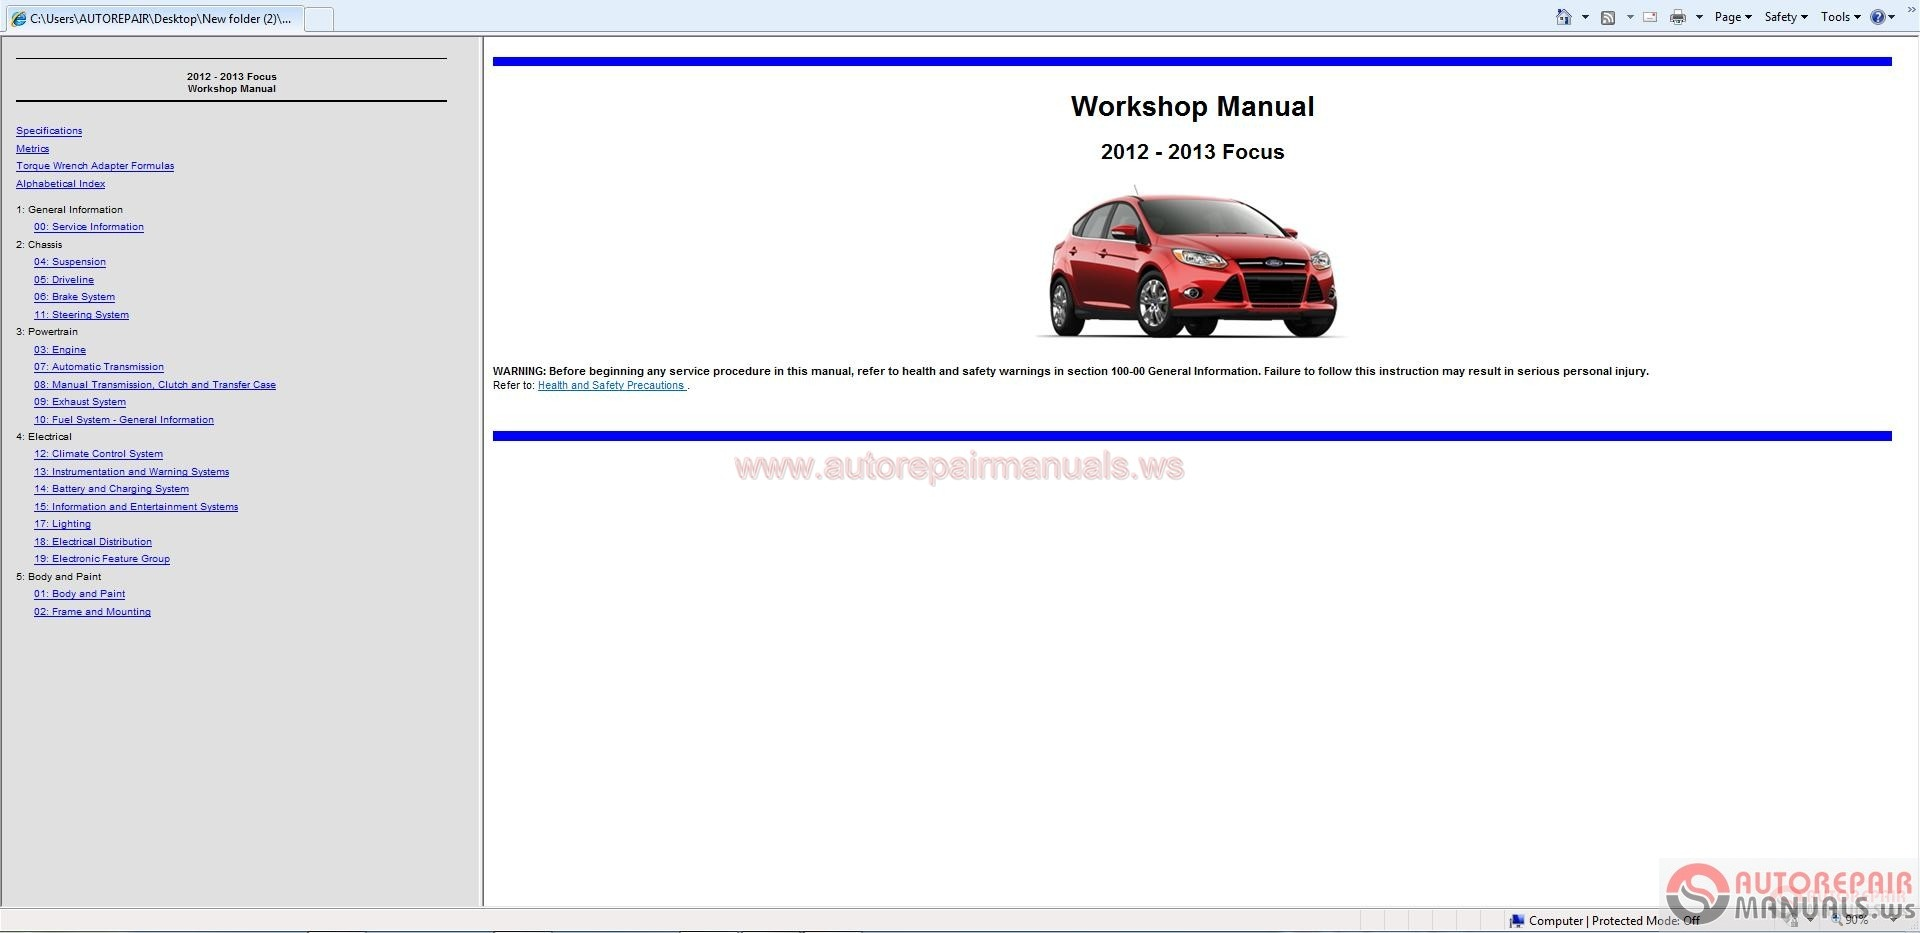 ford focus 2012 2013 workshop manual free auto repair. Black Bedroom Furniture Sets. Home Design Ideas